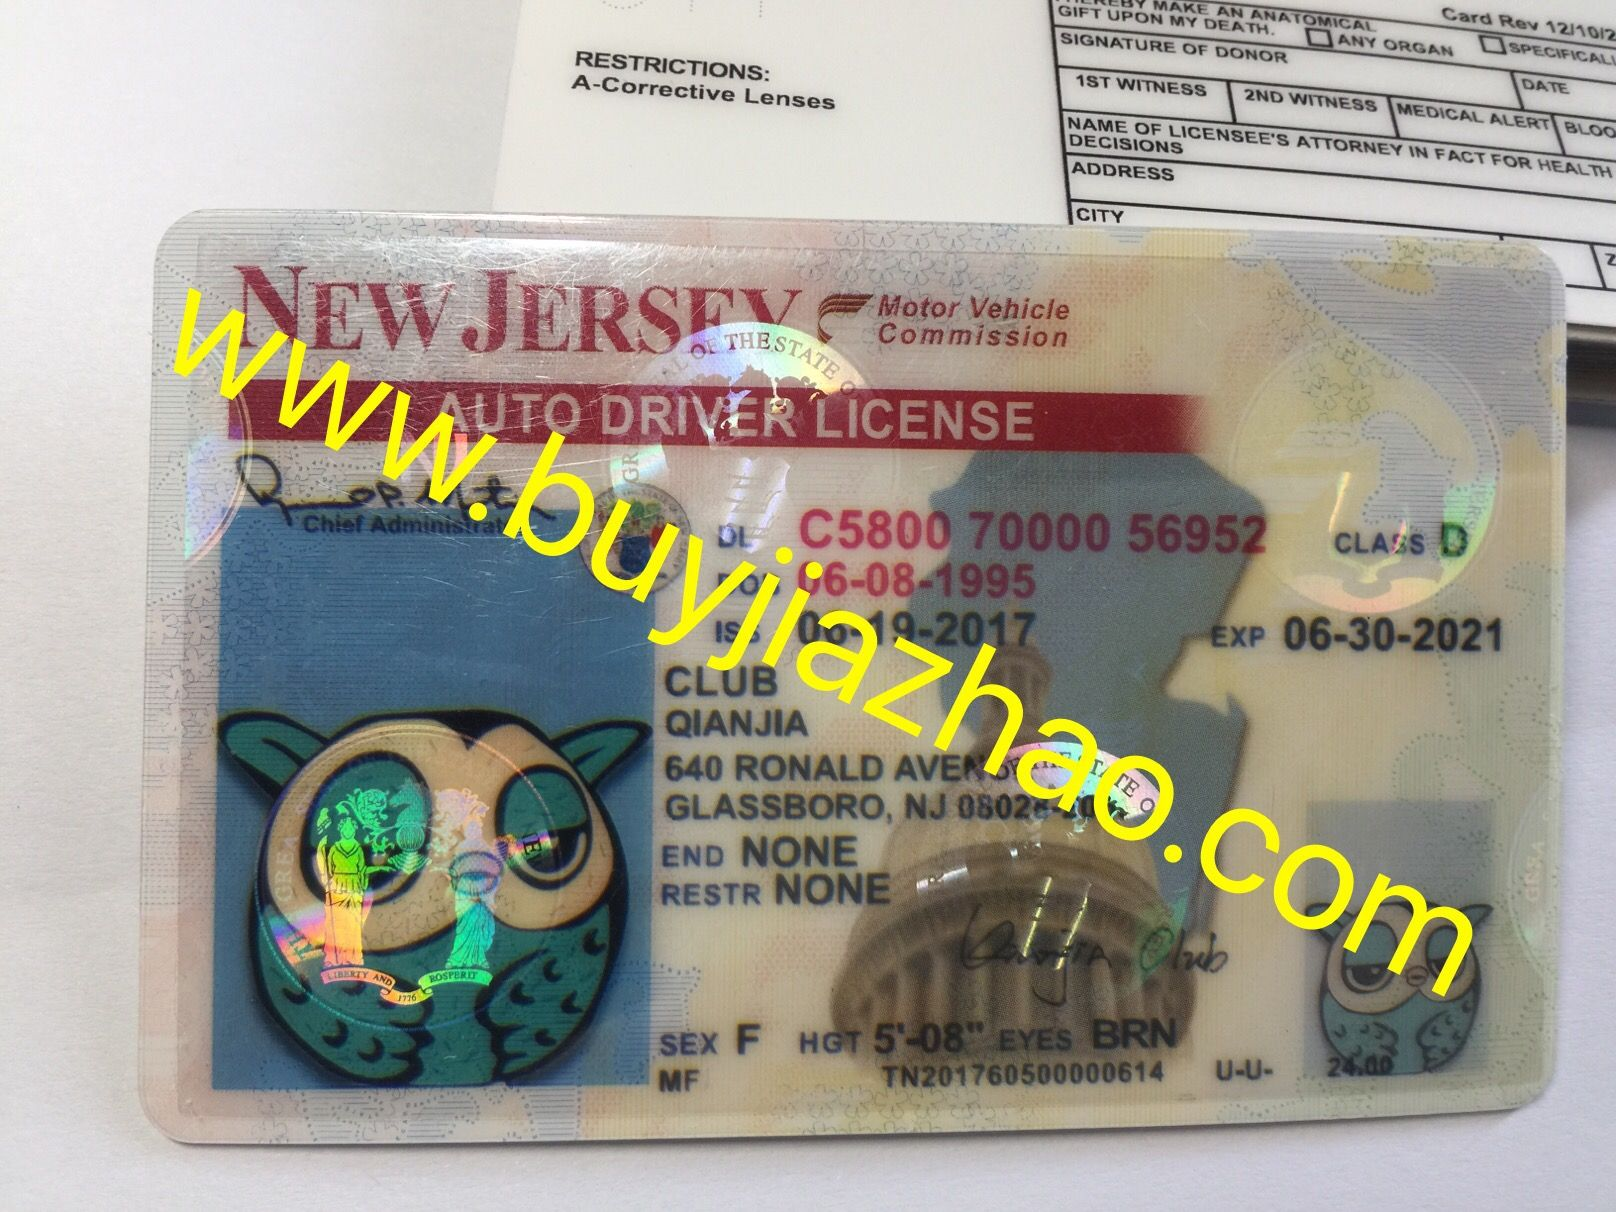 05afc8a04bf0bbdecec95fb62da03039 - How To Get A Driver S Permit In Nj